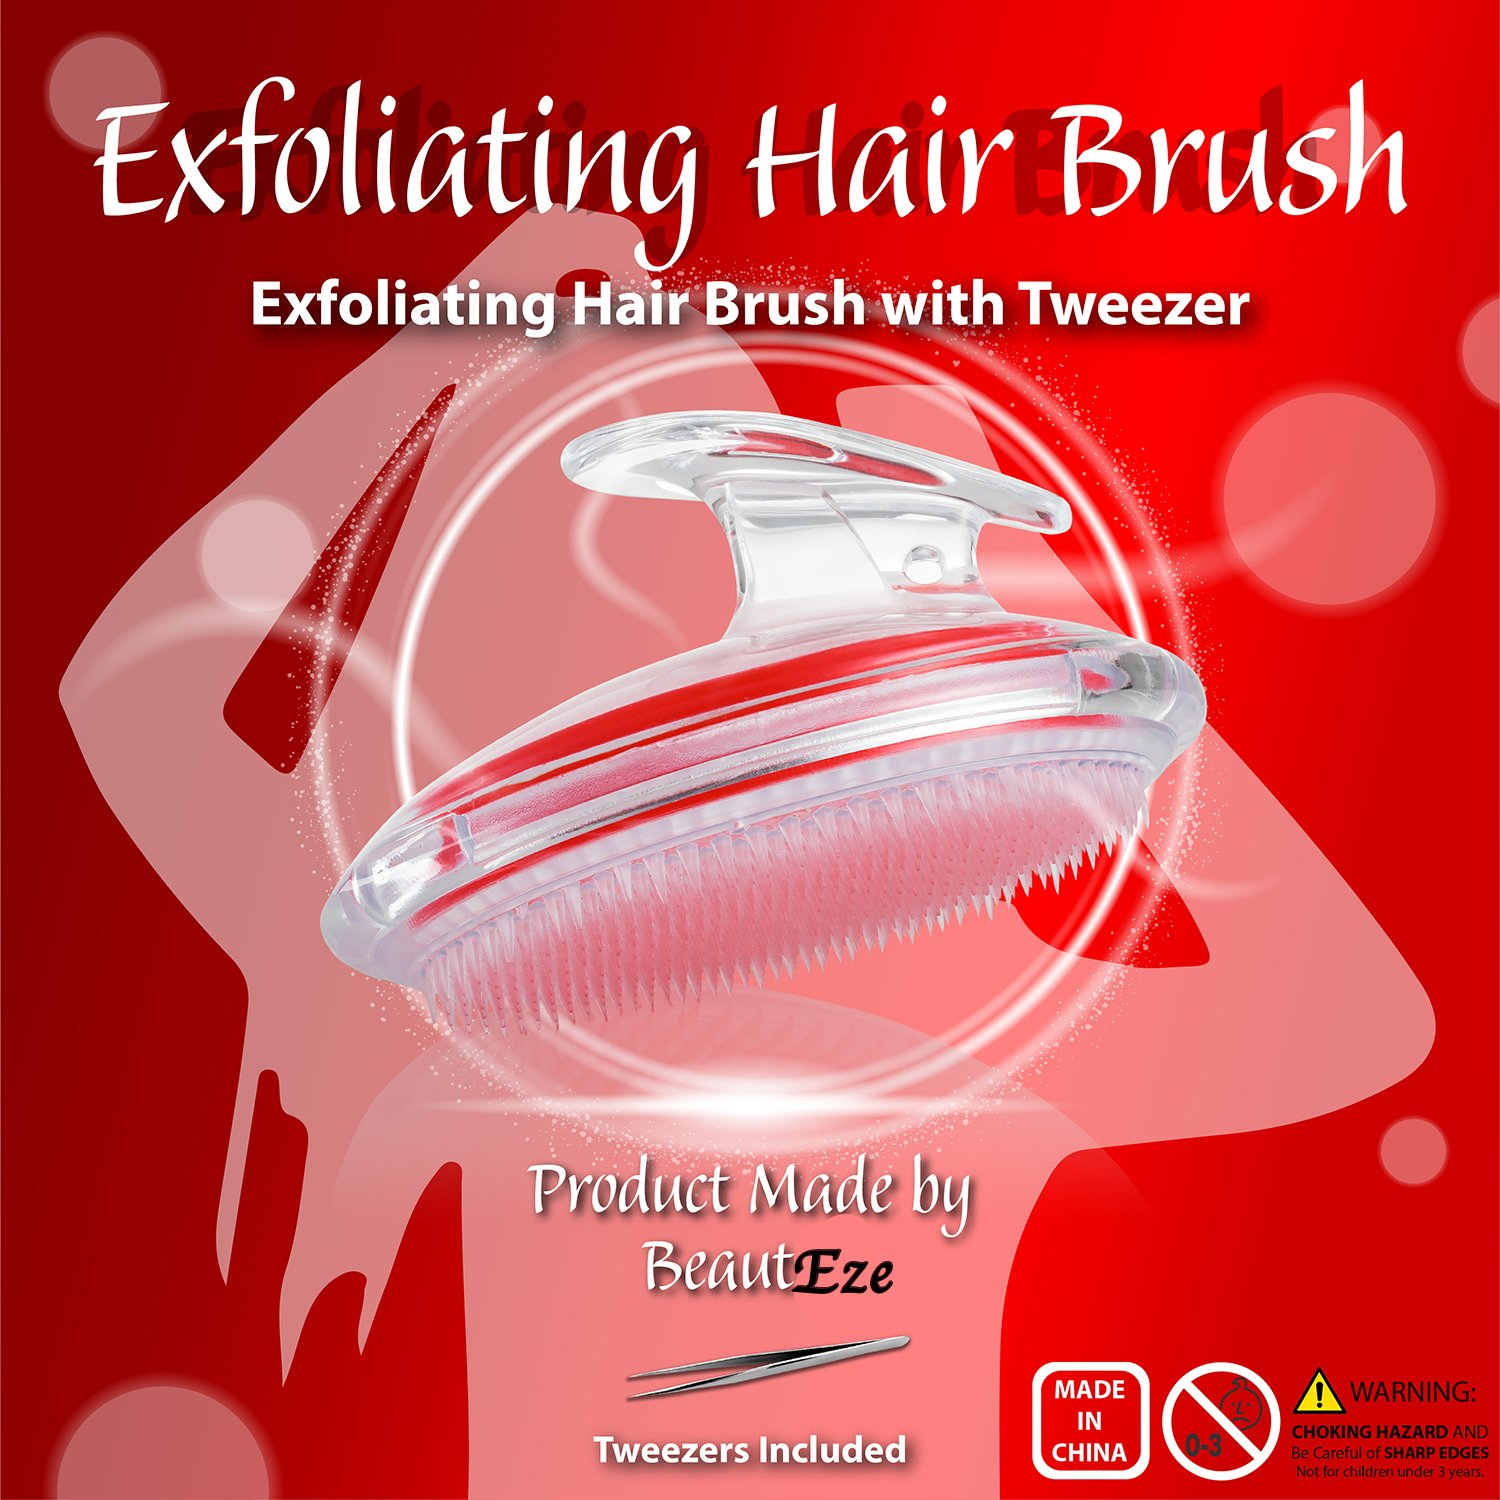 BeautEze Exfoliating Body Brush and Tweezers set for Treating and Preventing Razor Bumps and Ingrown Hairs for Men and Women,Flexible Bristle Brush to Eliminate Shaving Irritation and Dry Skin for Face, Armpit, Legs, Bikini Line